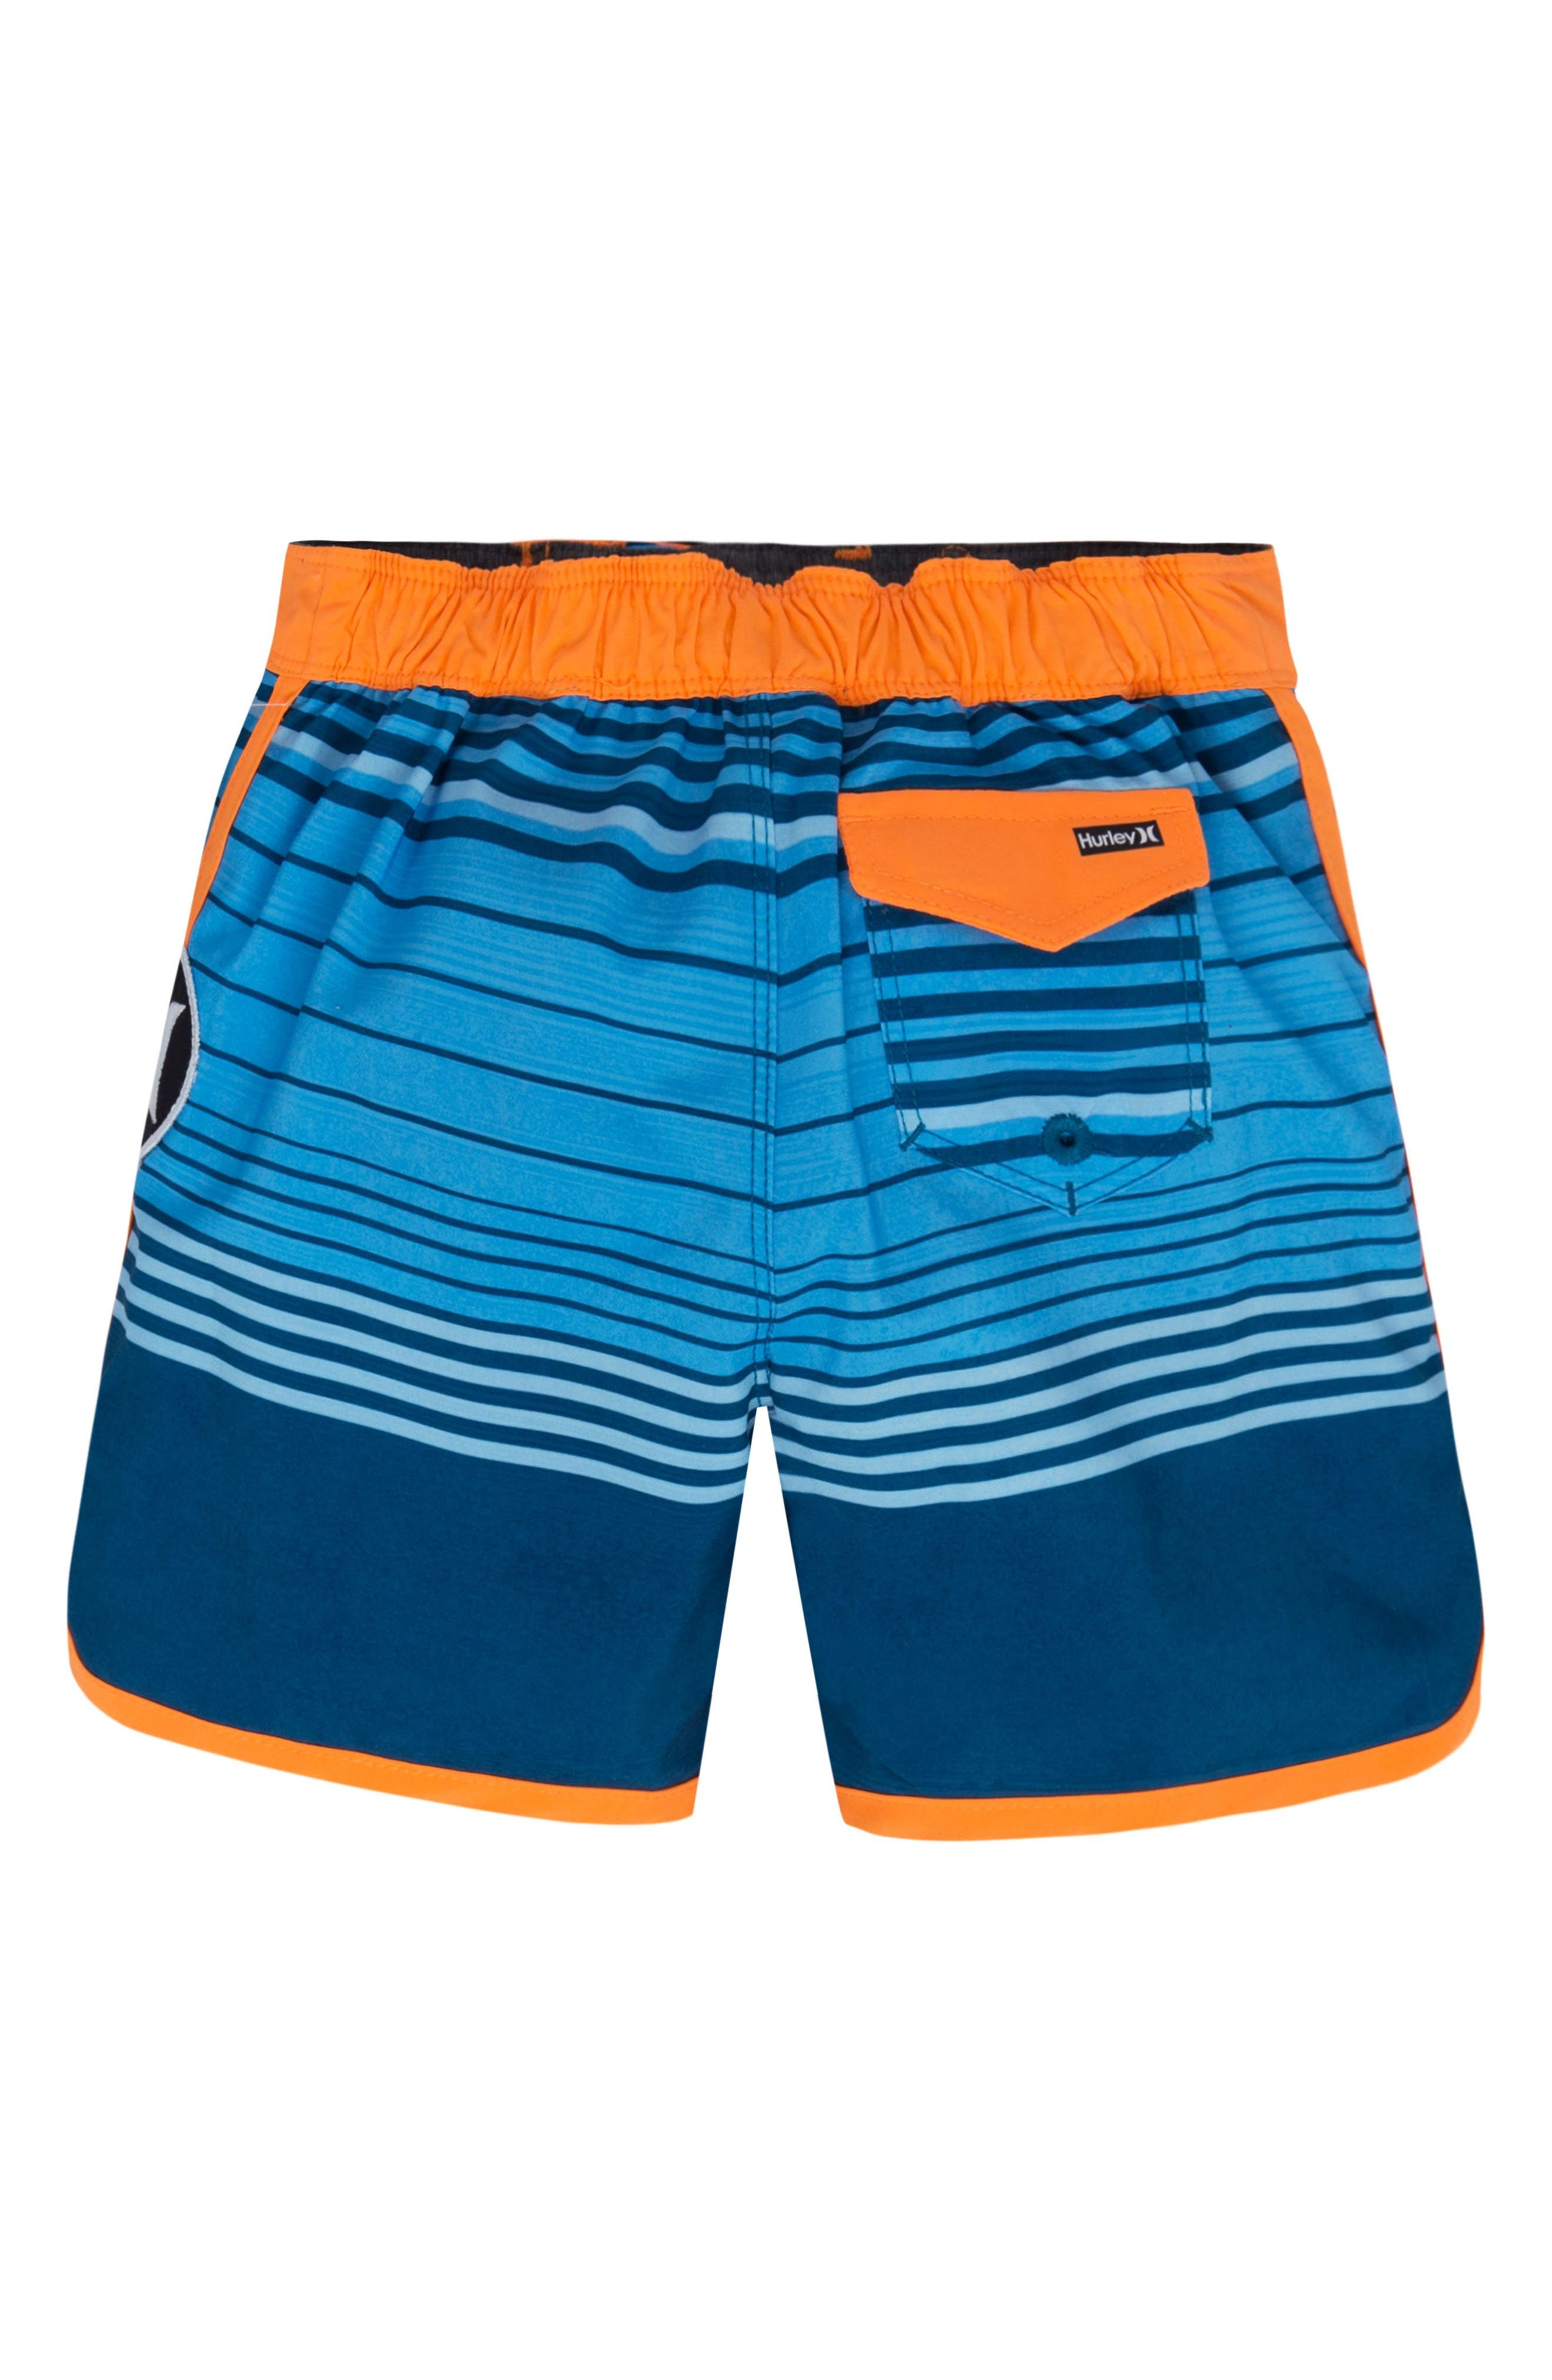 Peter Board Shorts,                             Alternate thumbnail 2, color,                             Ice